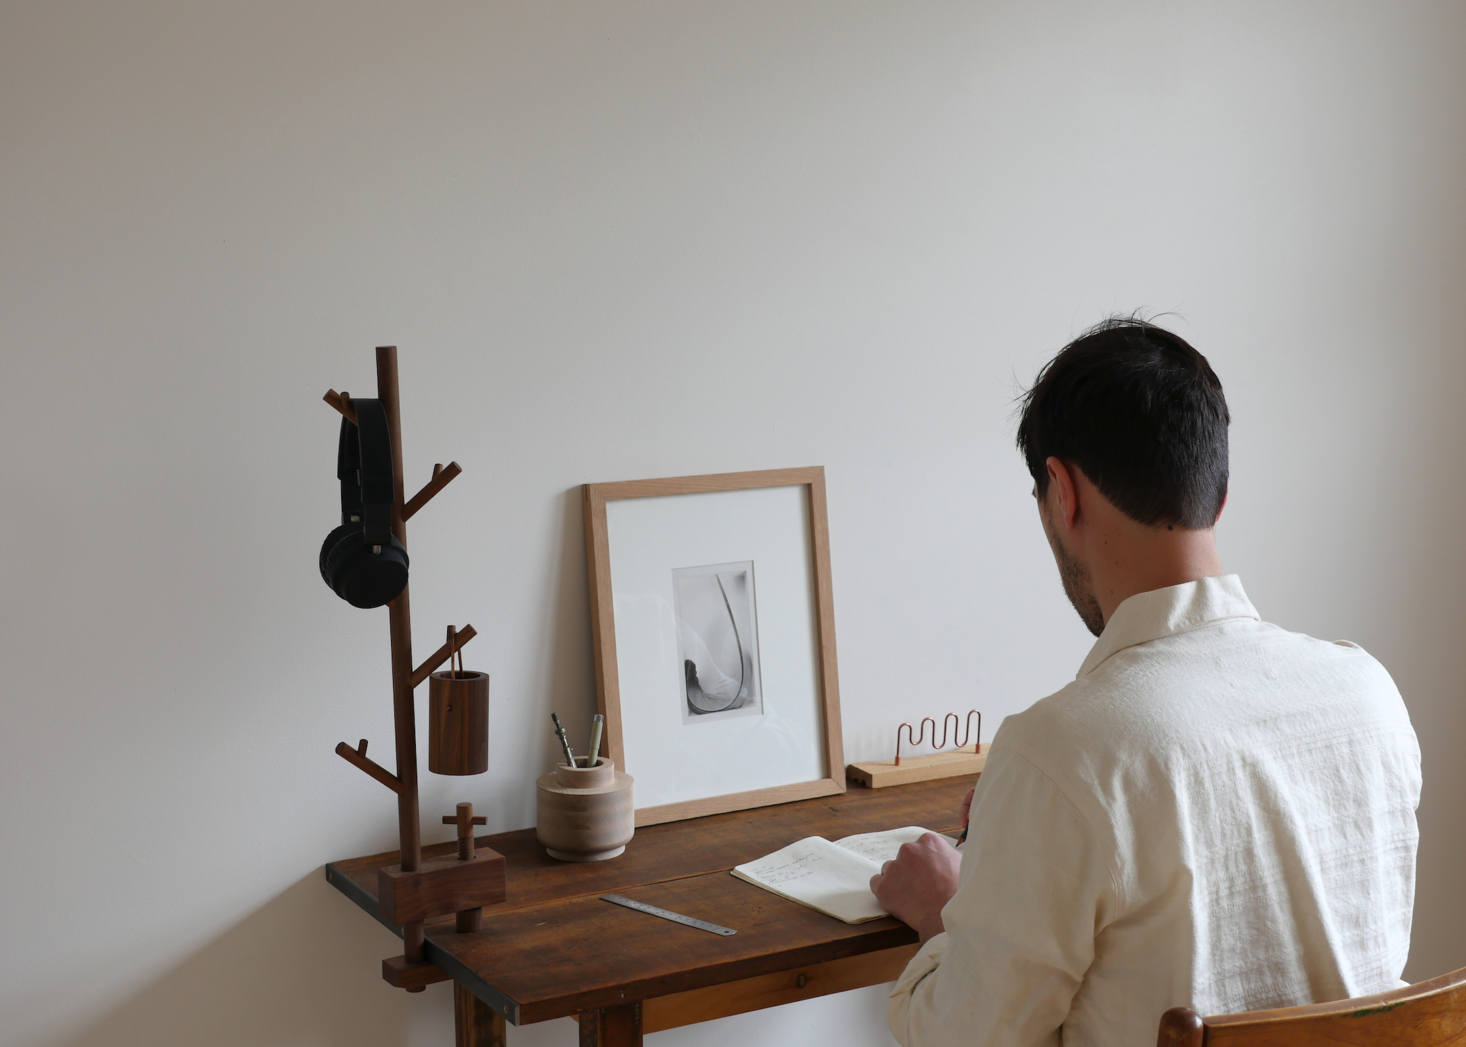 Accordance with Nature: Thoughtful Wood and Metal Goods by a Self-Taught Maker